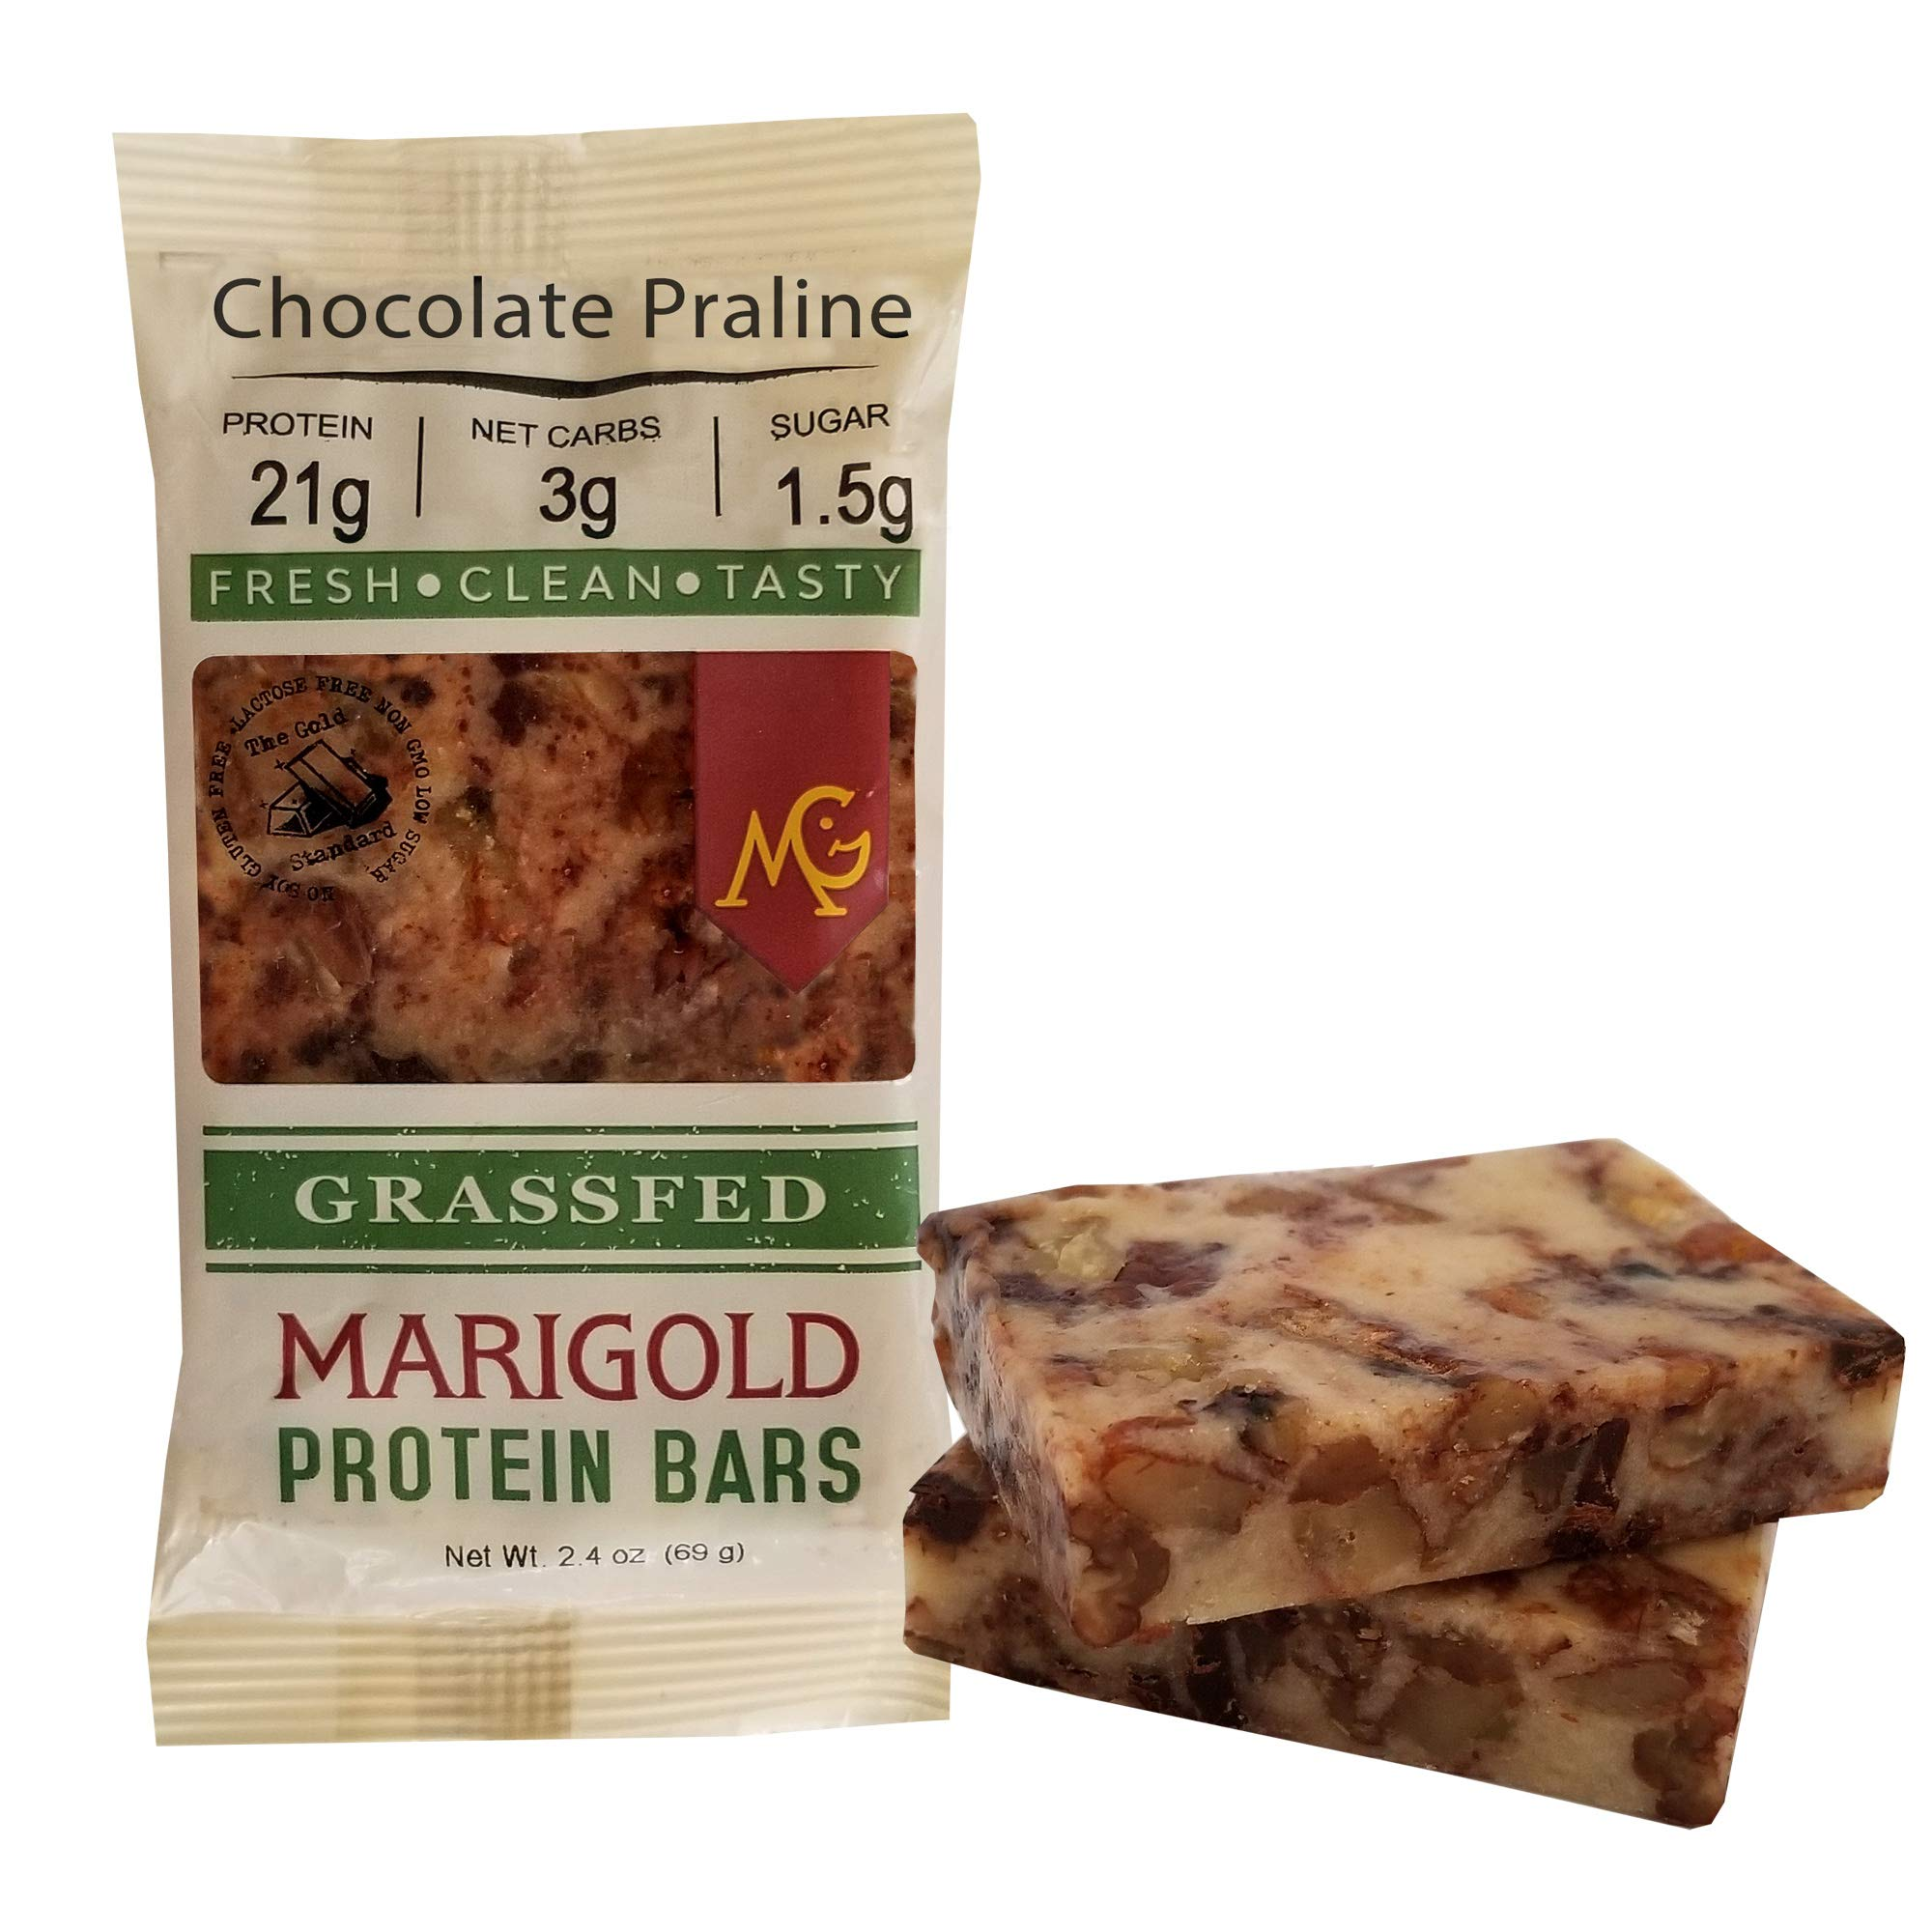 Keto (2-3 NET CARB) Protein Bar by MariGold - Amazing Taste Ketogenic Snacks - Organic Fats, 1 g Sugar, 21 g Protein GRASS FED Whey - Non GMO. Made Fresh, Ships Fresh. (12 bars) by MariGold Bars (Image #3)